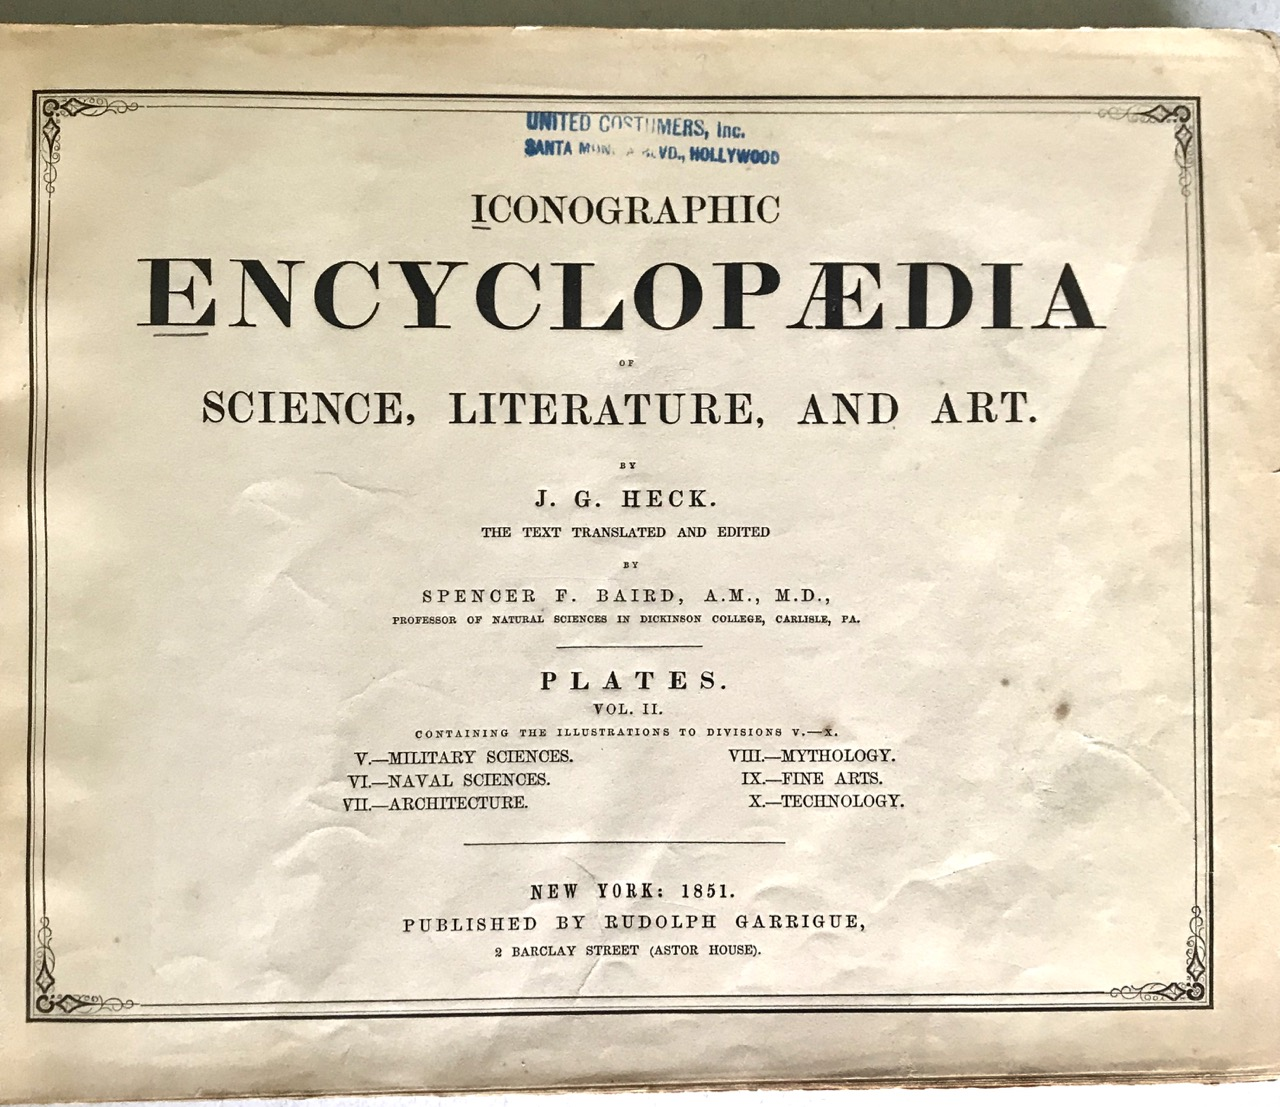 Image for The Iconographic Encyclopaedia of Science, Literature, and Art: Volume 2: Military Sciences, Naval Sciences, Architecture, Mythology, Fine Arts, Technology